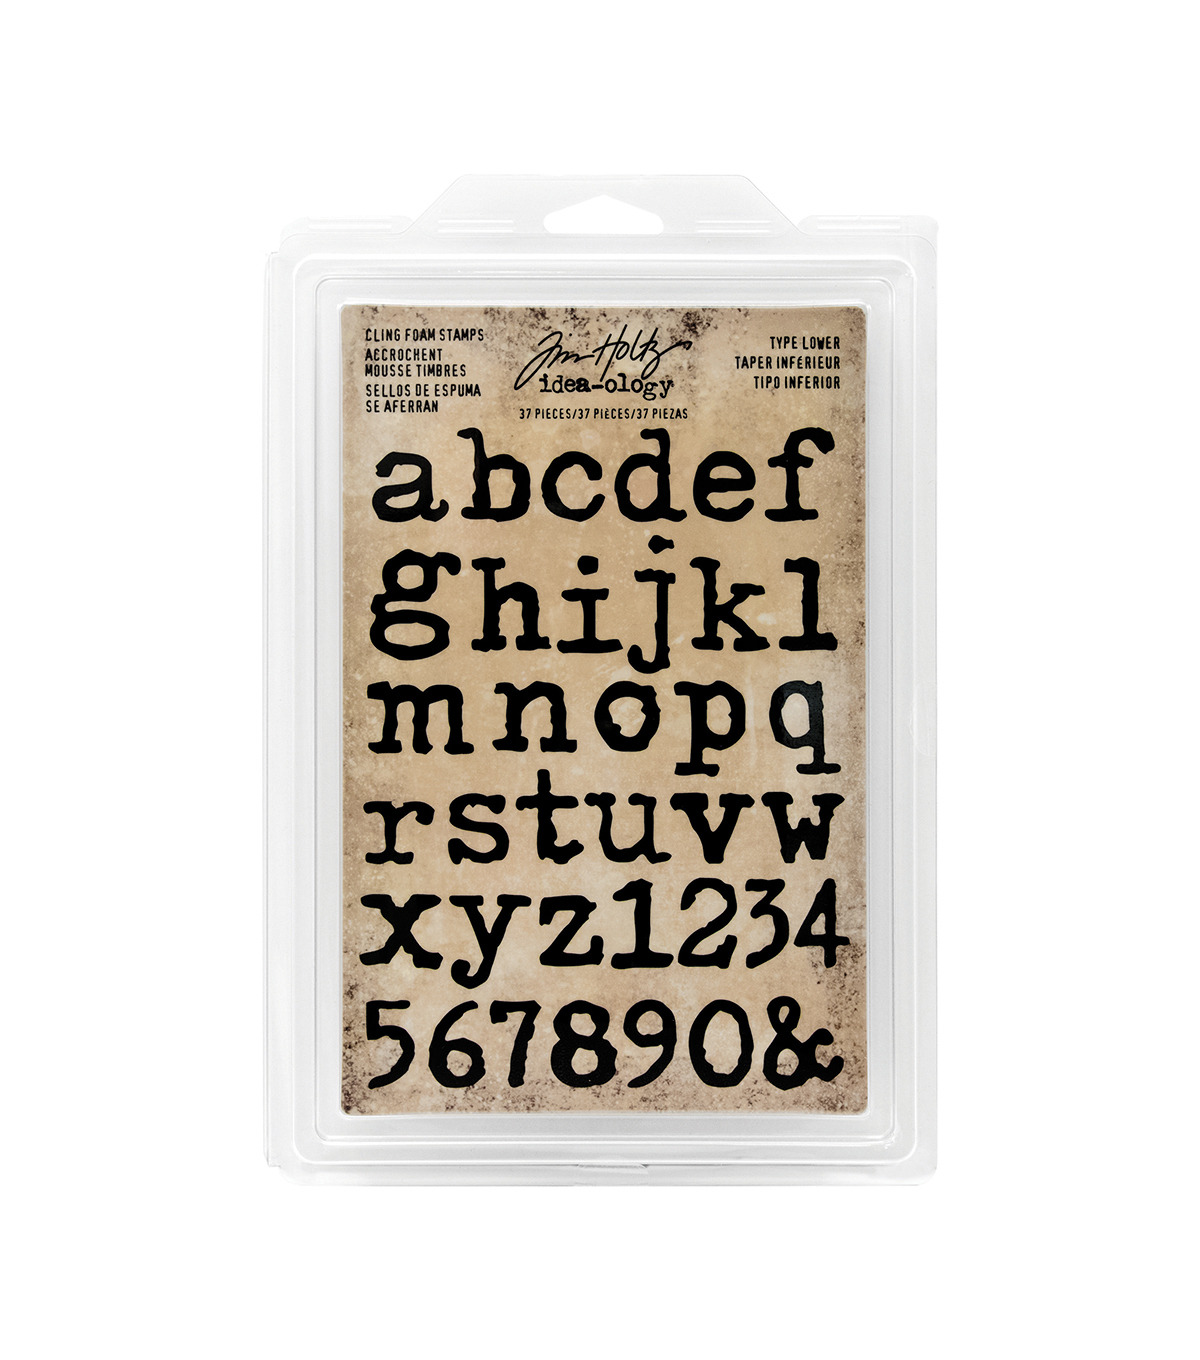 Tim Holtz Idea-ology Pack of 37 Type Lower Cling Foam Stamps